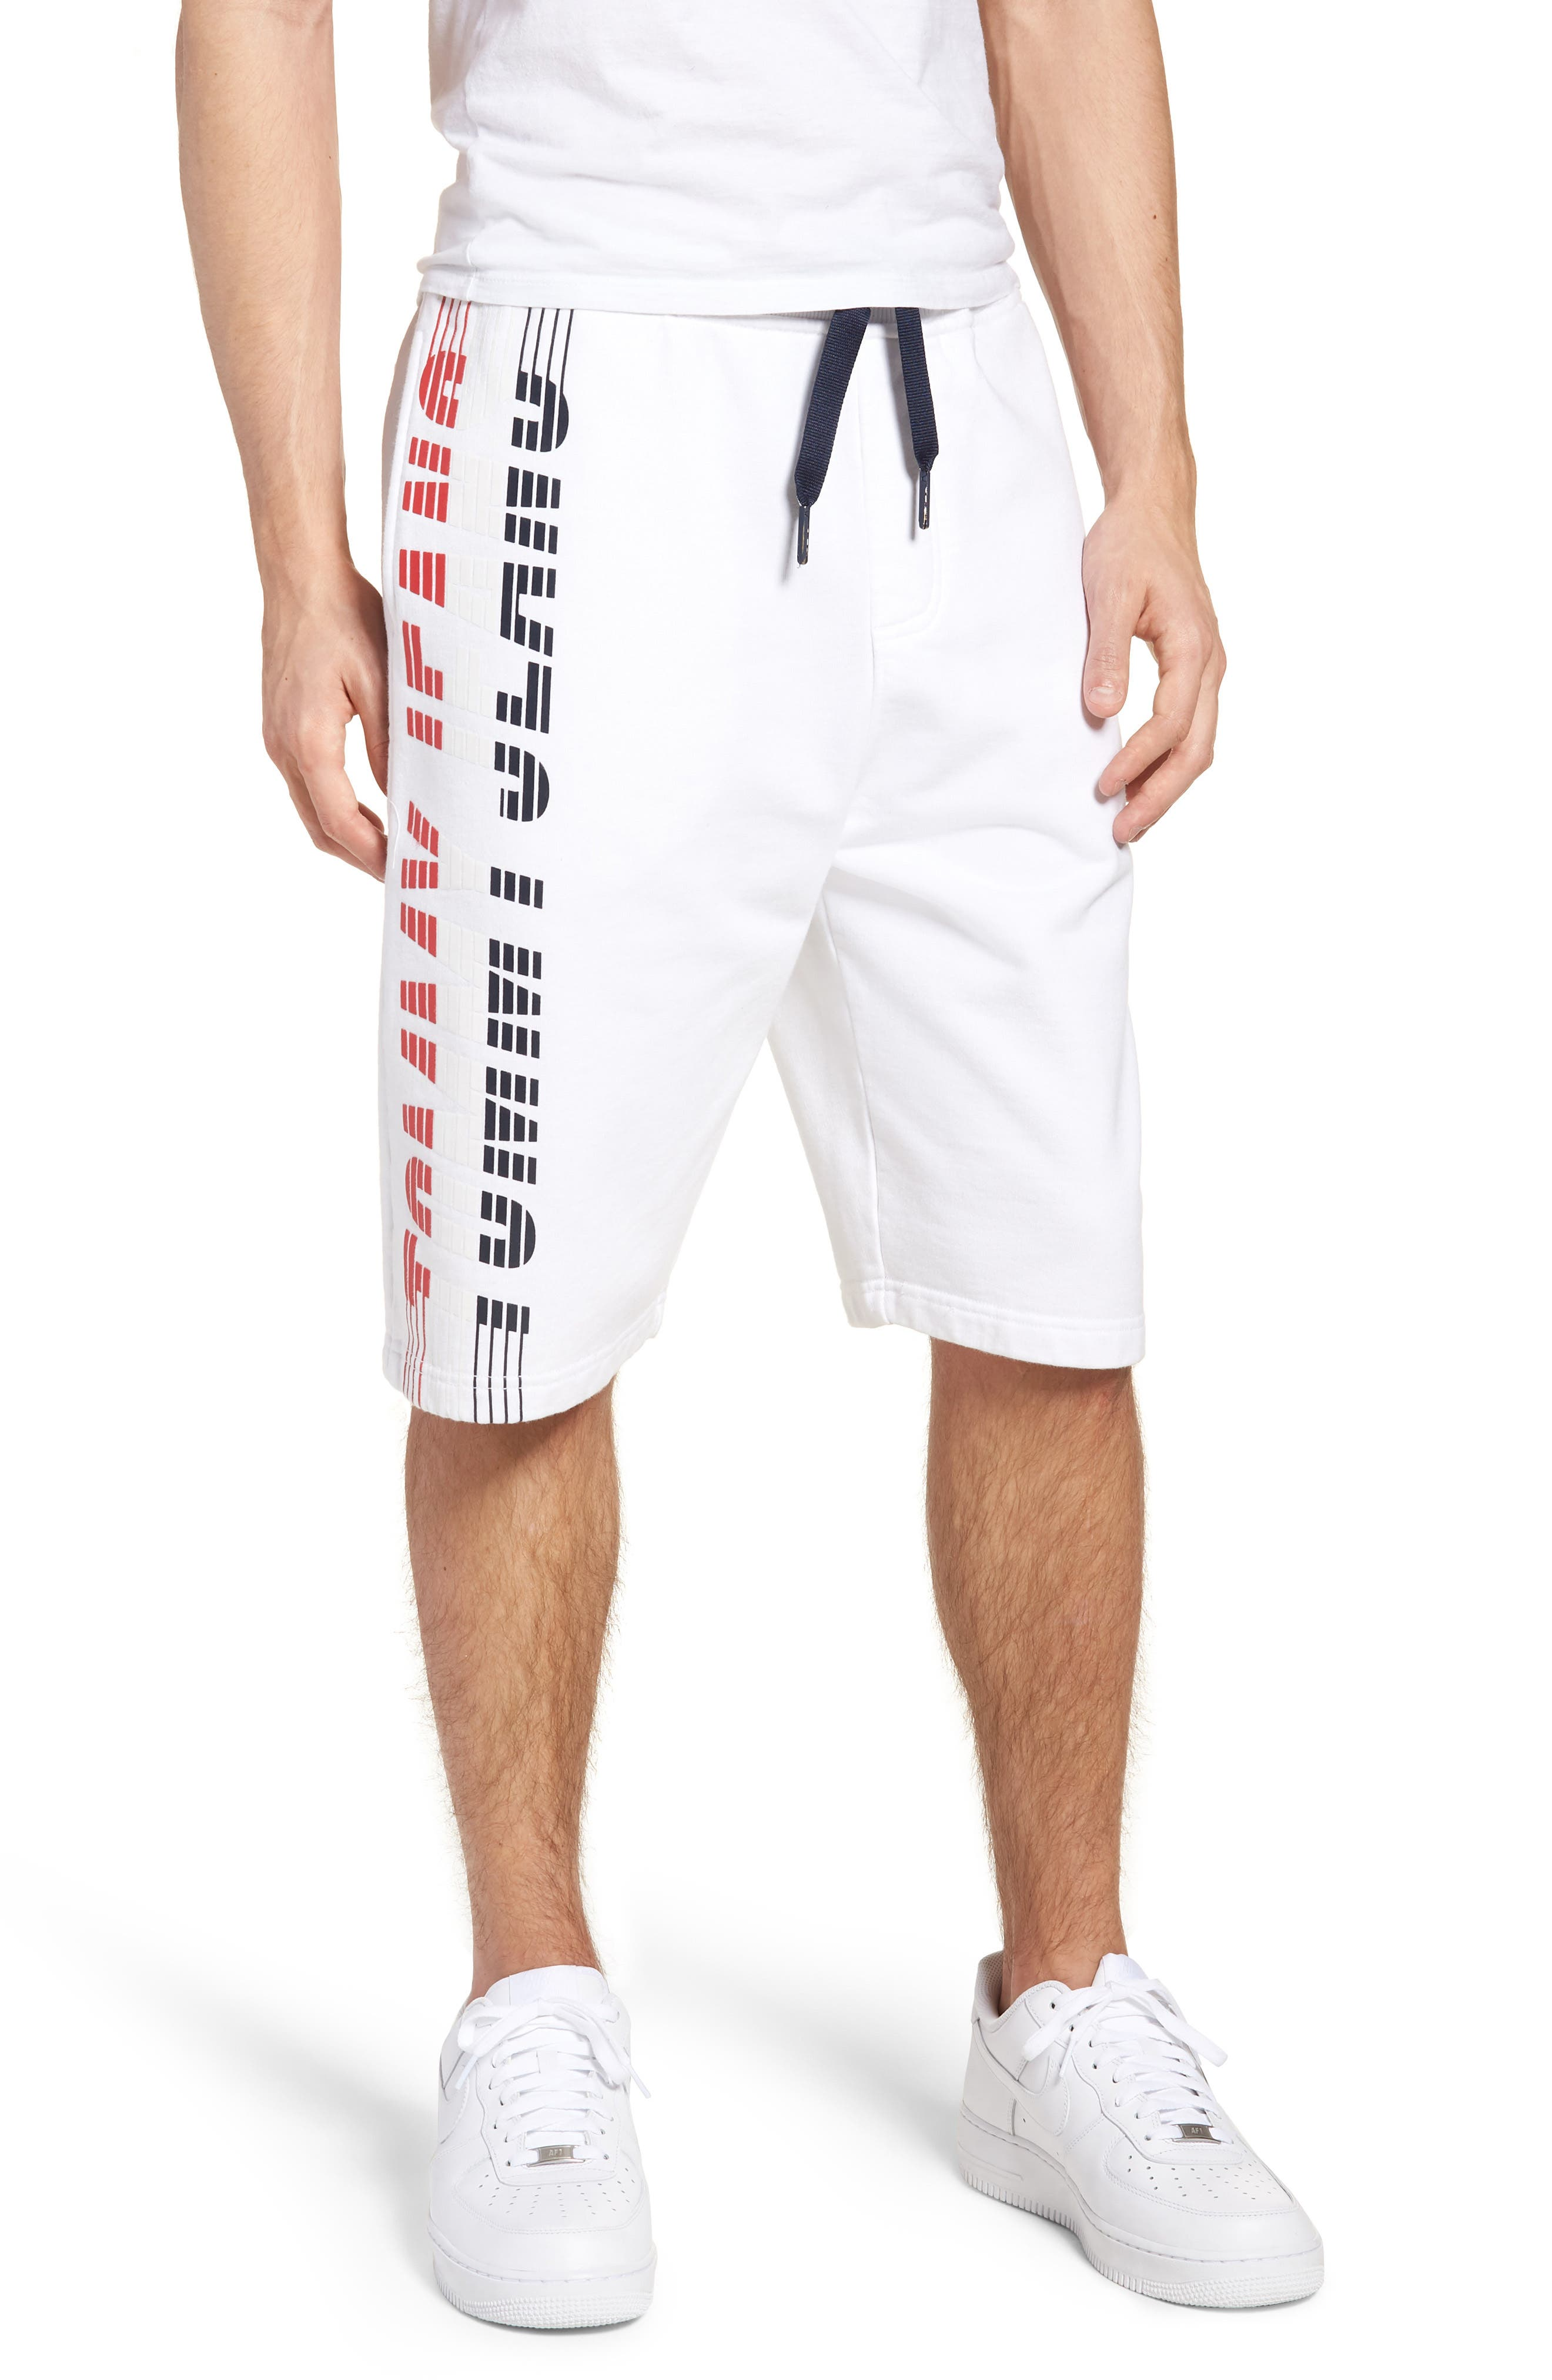 Vintage Graphic Basketball Shorts,                         Main,                         color, Classic White